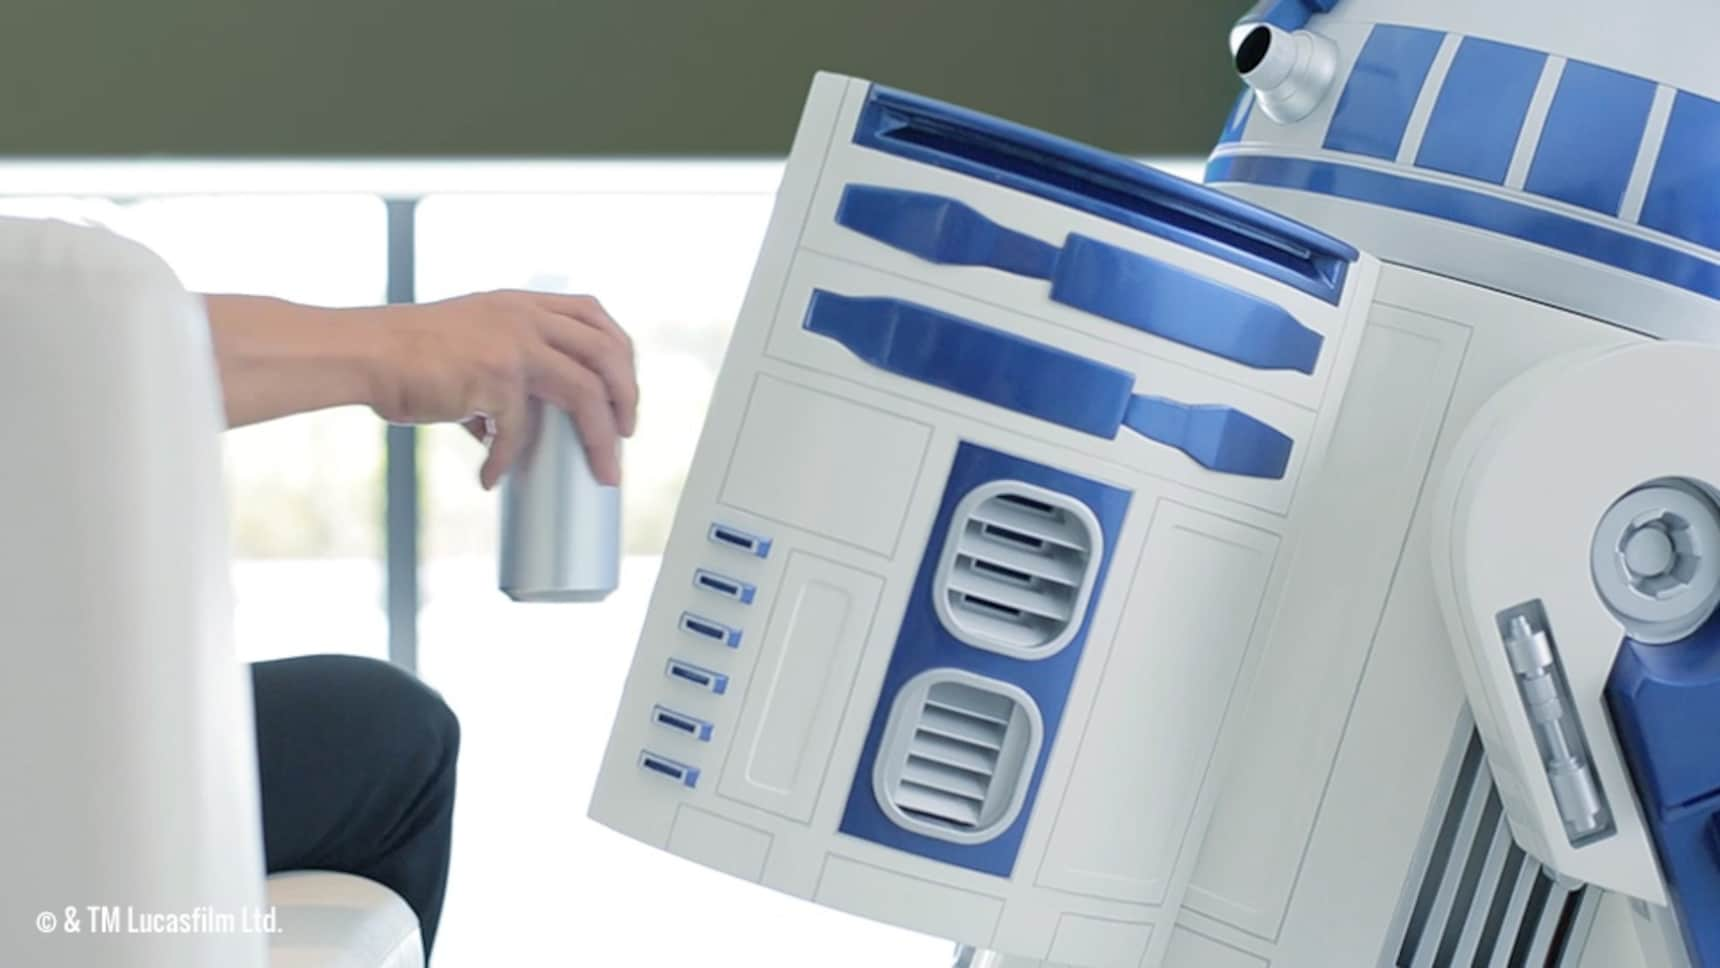 Life-Size R2-D2 is a Moving Refrigerator!